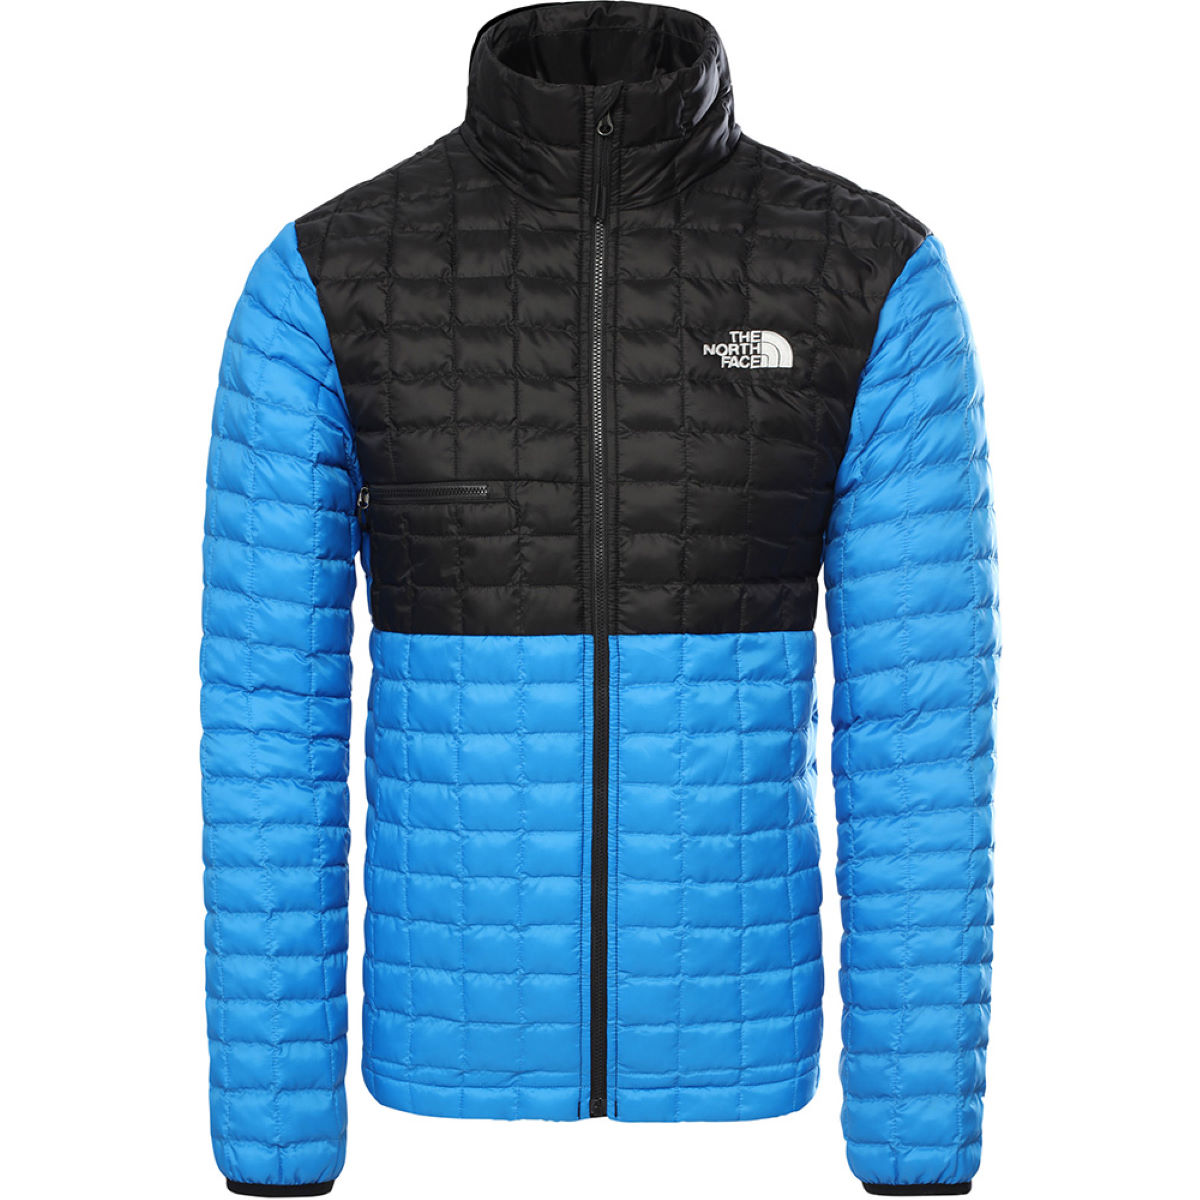 The North Face The North Face ThermoBall™ Eco Light Jacket   Jackets